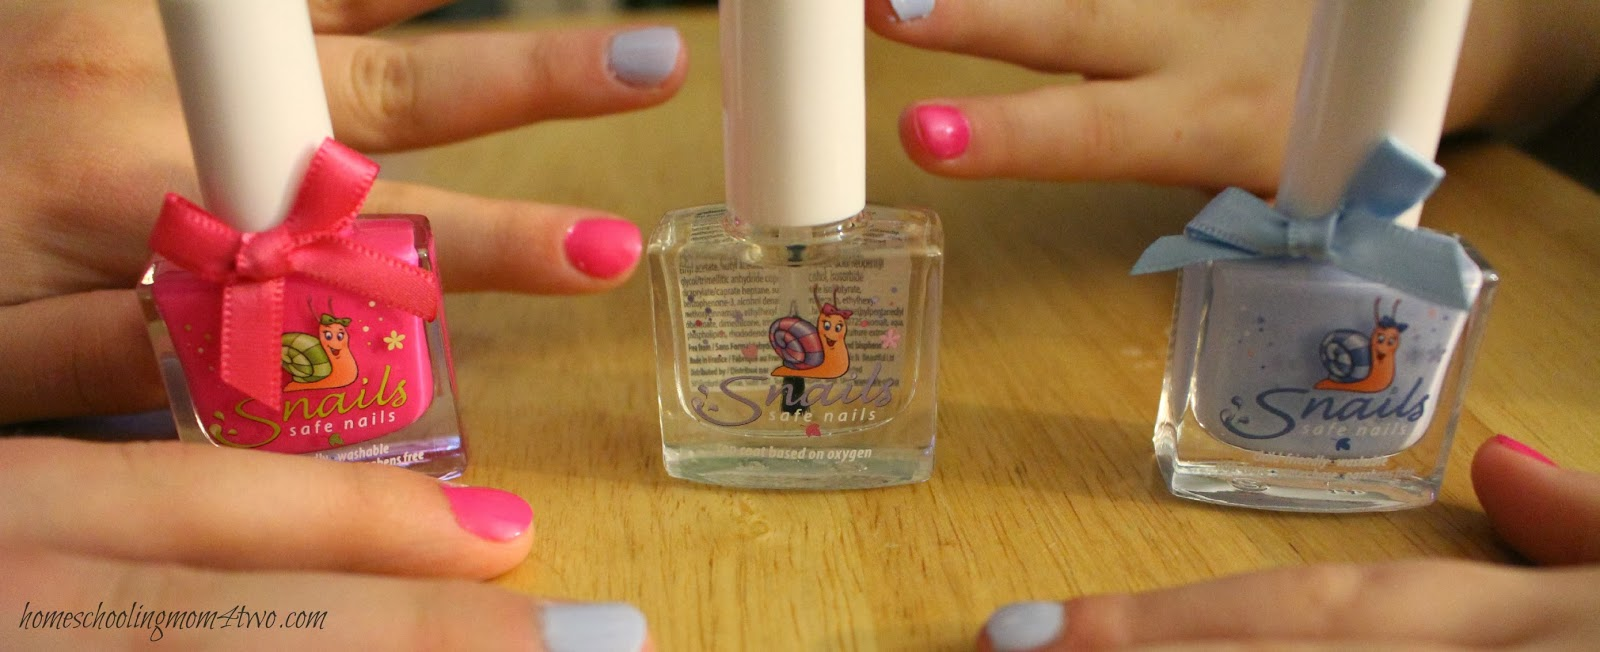 You can breath easy with Snails Safe Nails polishes for kids #Review ...